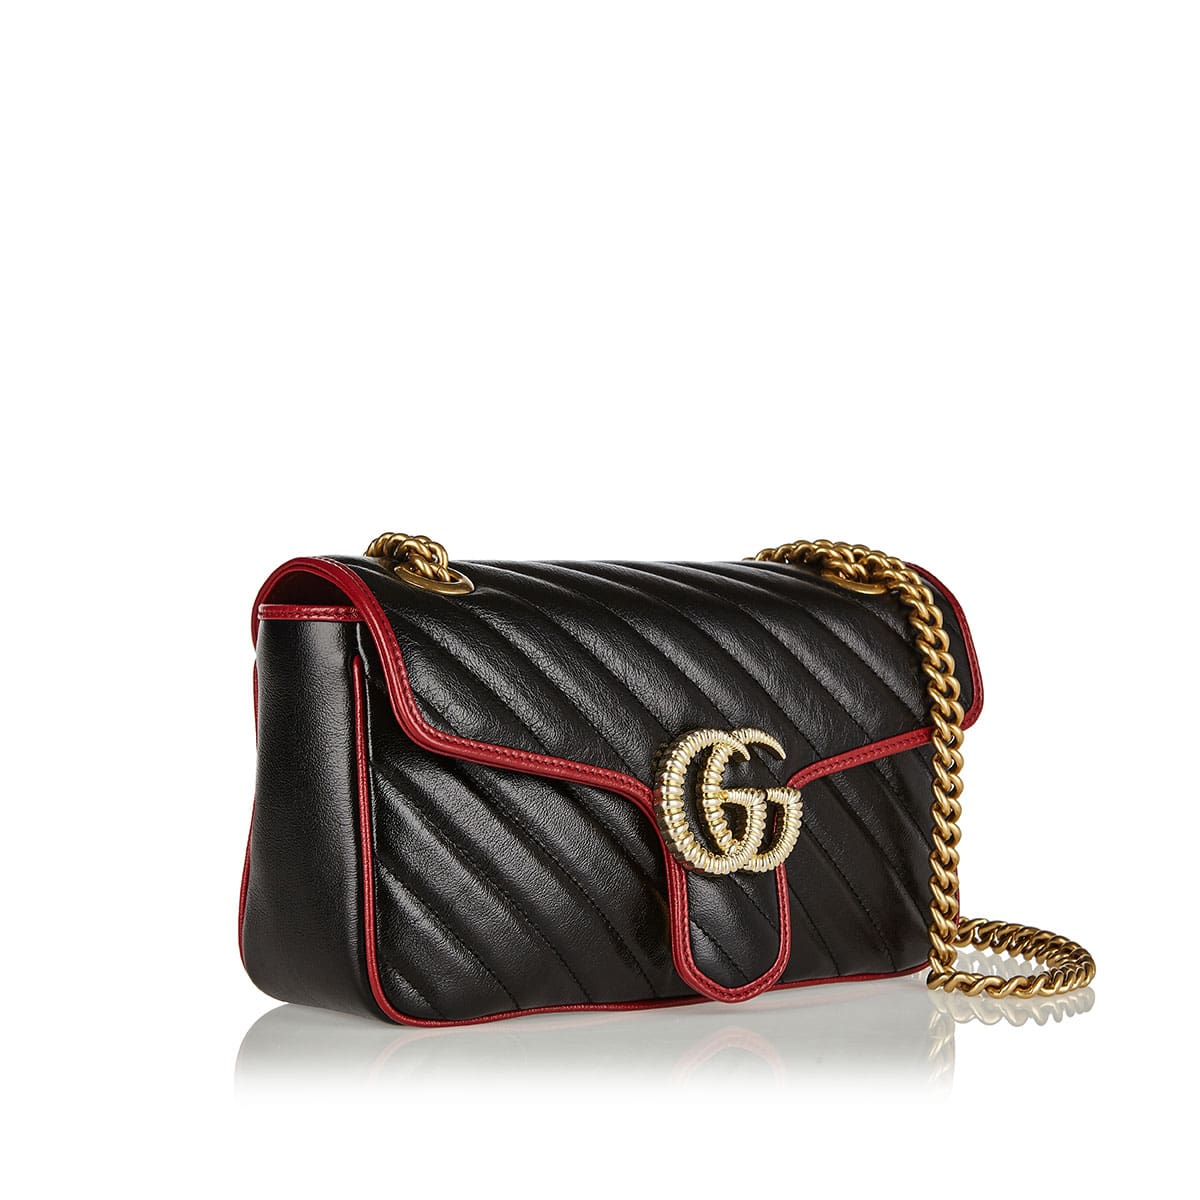 GG Marmont two-tone small shoulder bag